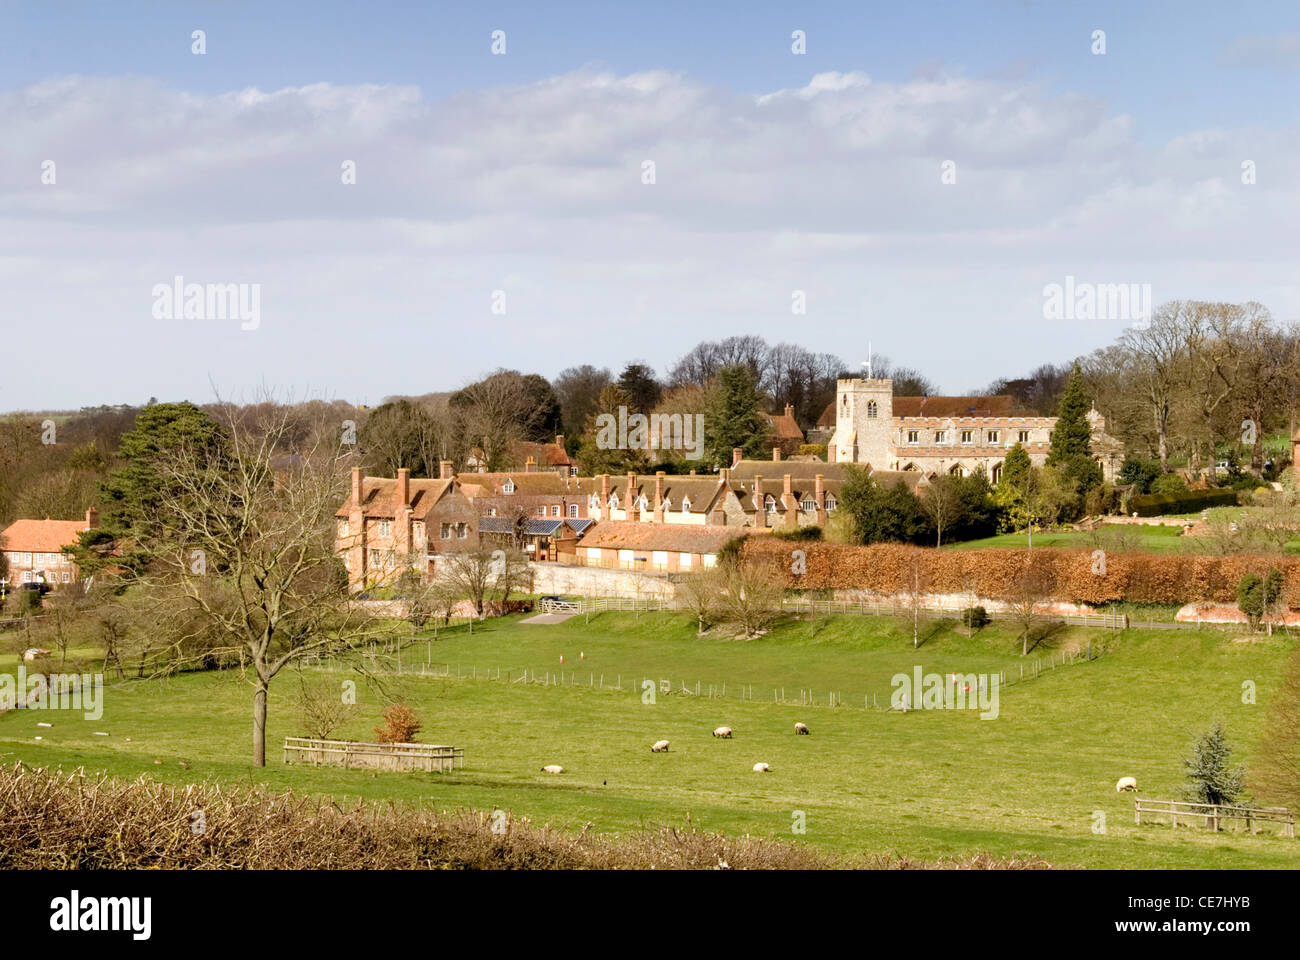 Chiltern Hills -Oxon - Ewelme village - a view across the fields to its hill top setting - Stock Image